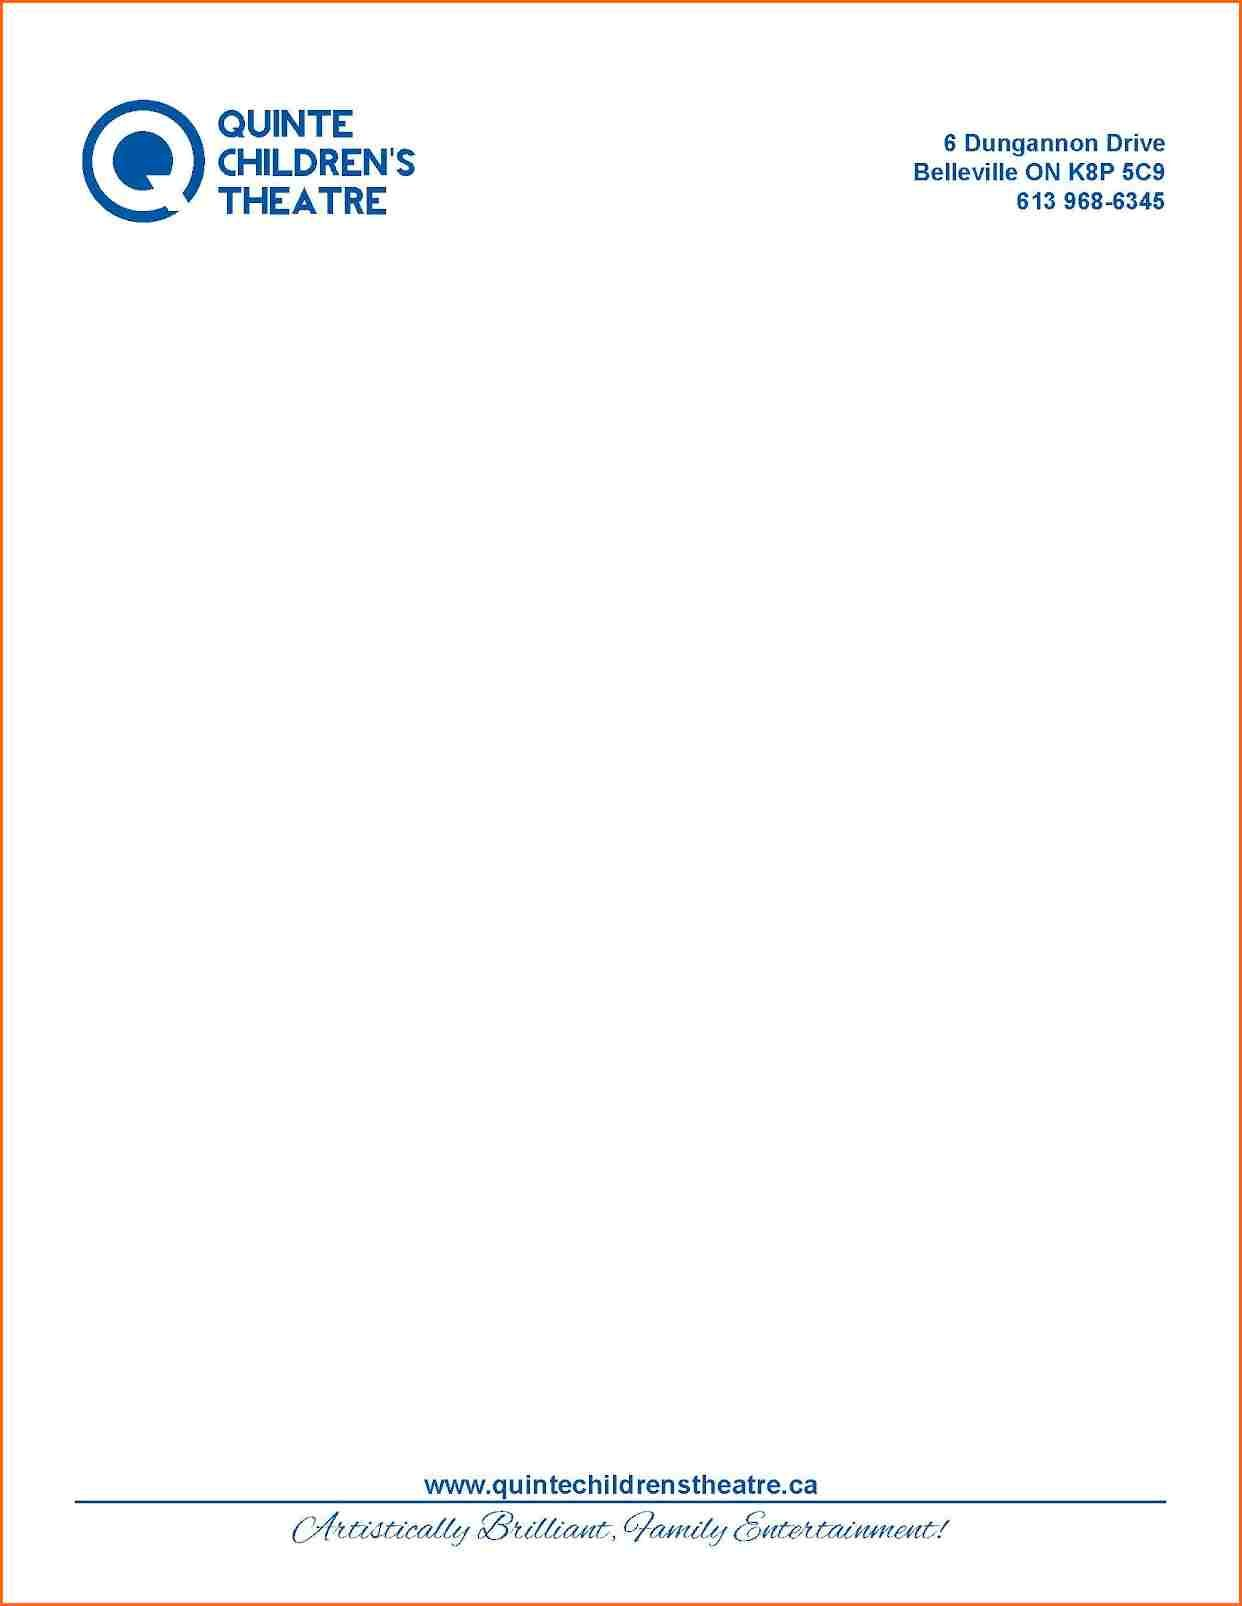 have been printing business forms letterheads and stationery for